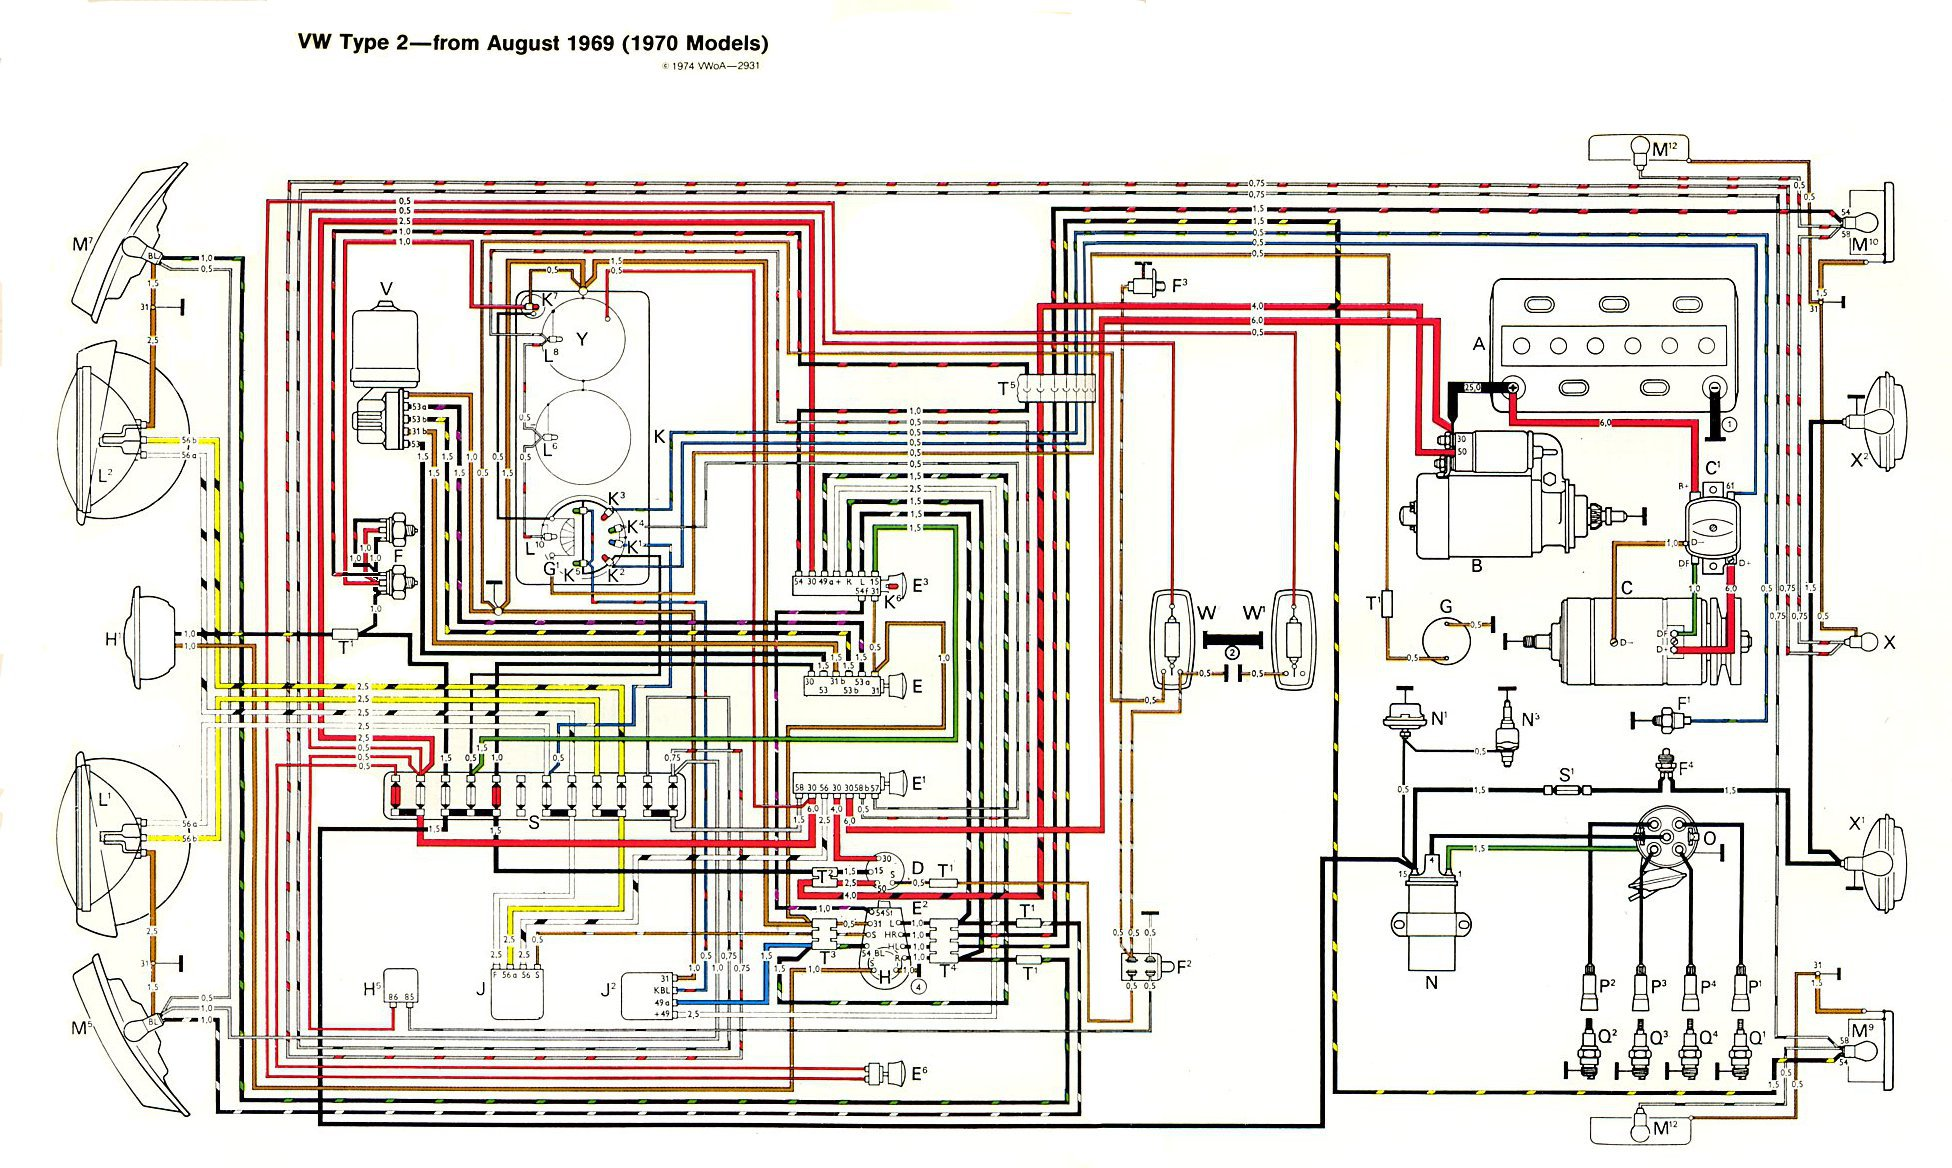 baybus_70 thesamba com type 2 wiring diagrams Wiring Harness Diagram at virtualis.co